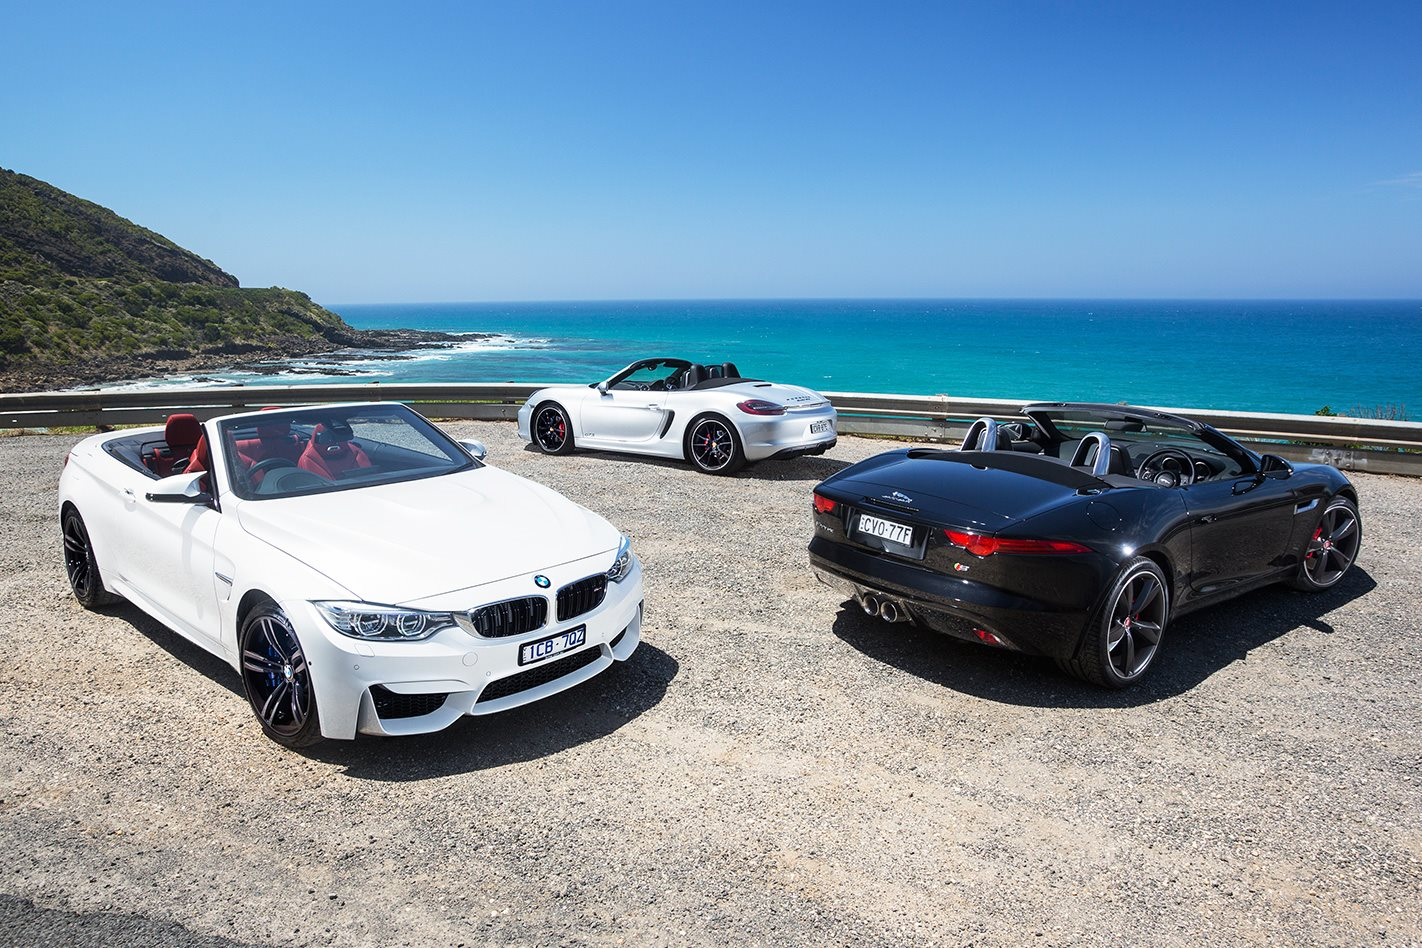 Bmw M4 Convertible Vs Jaguar F Type V6 S Vs Porsche